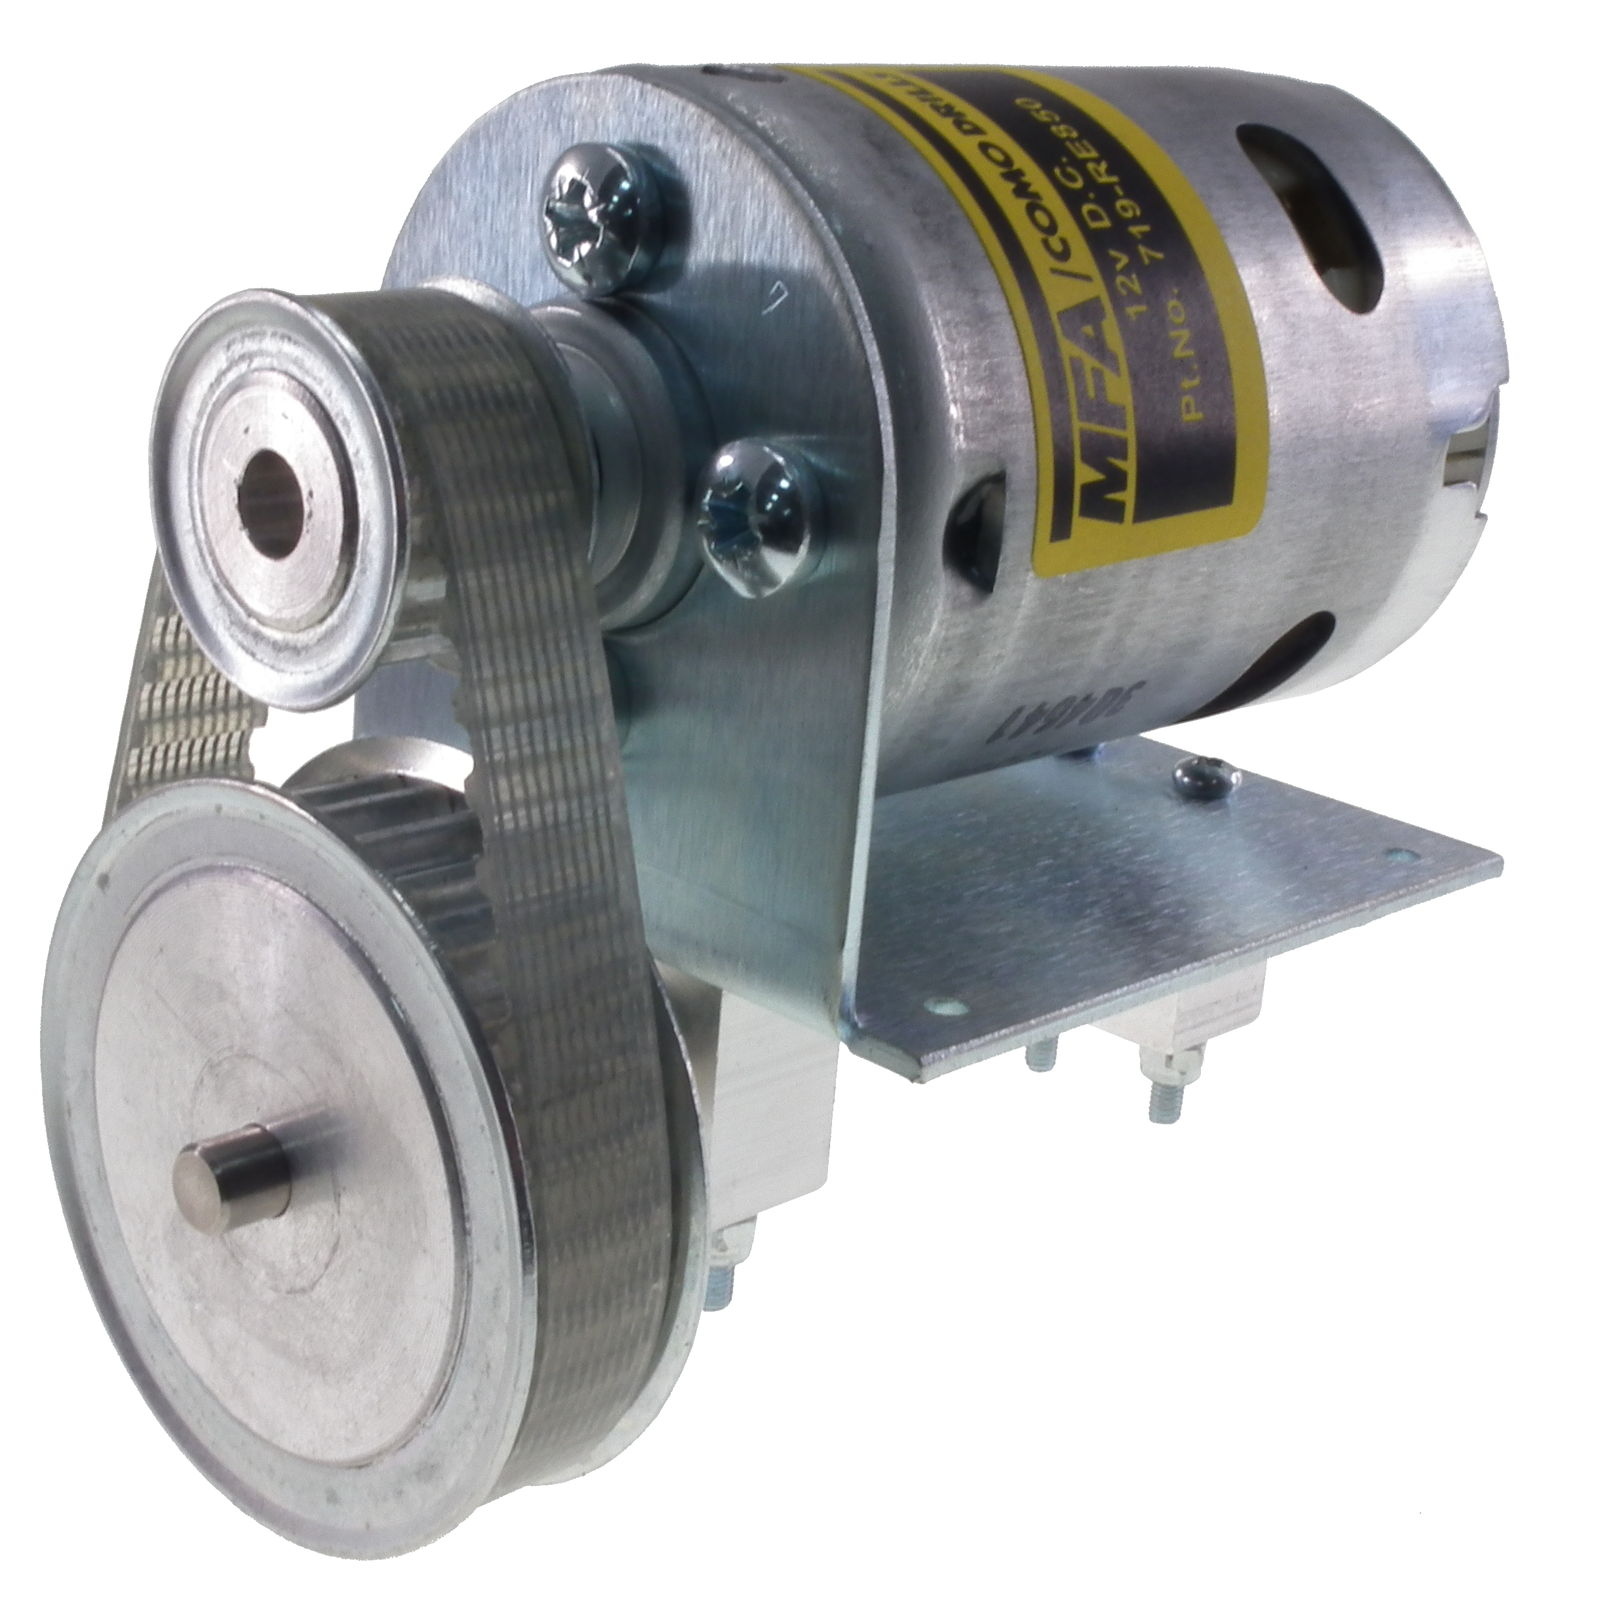 800 12V DC Motor with 2 1:1 belt Reduction drive MFA